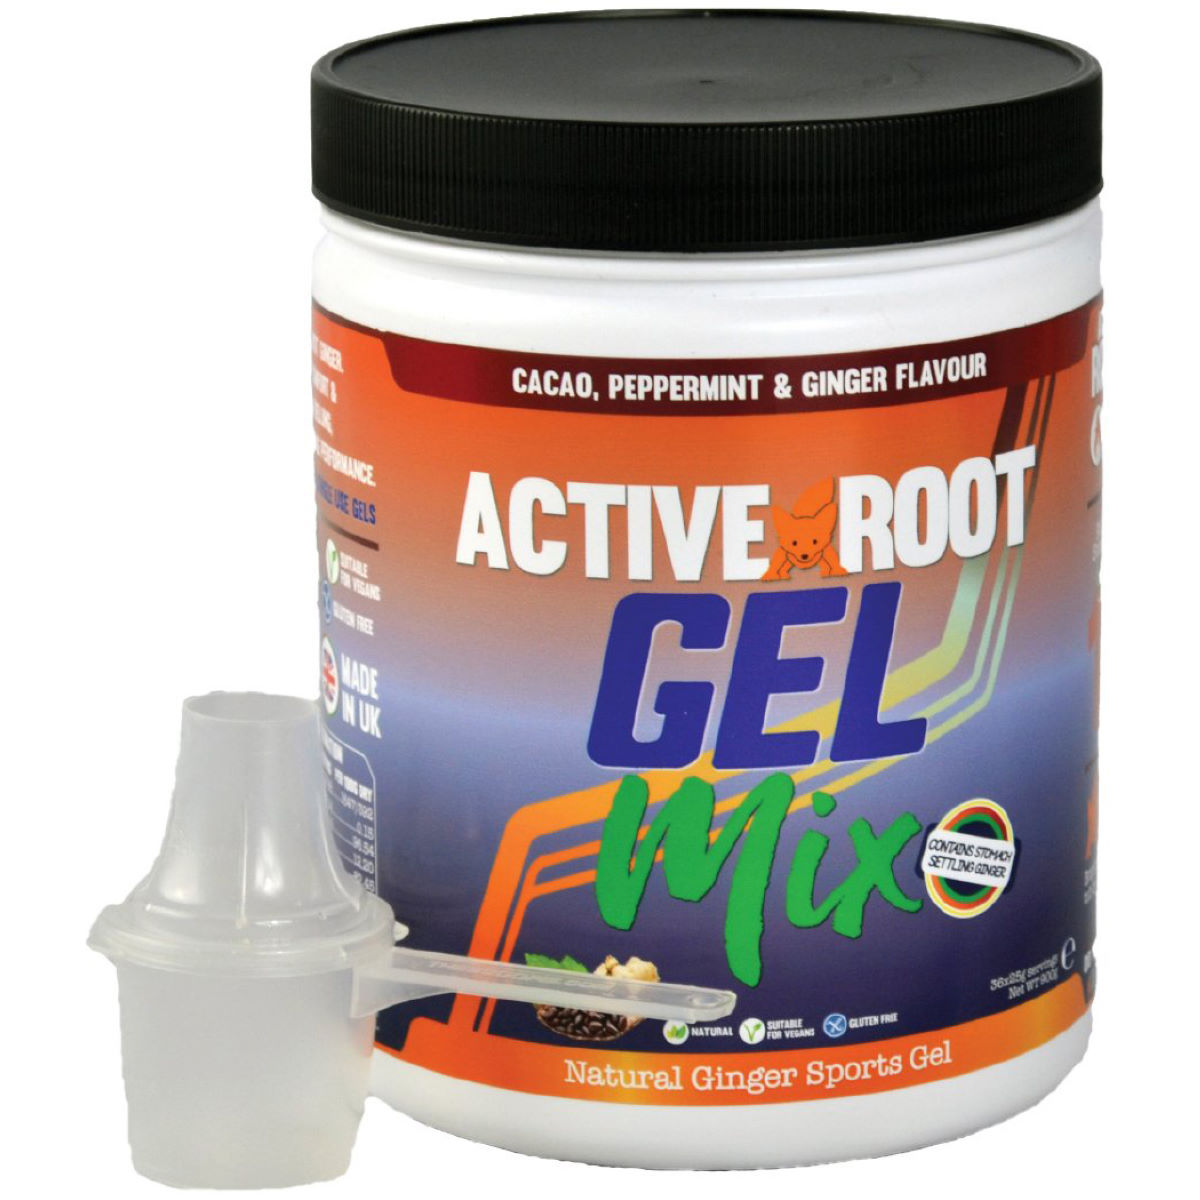 Active Root Gelmix Powder (900g) - 900g Tub Cacao  Peppermint An